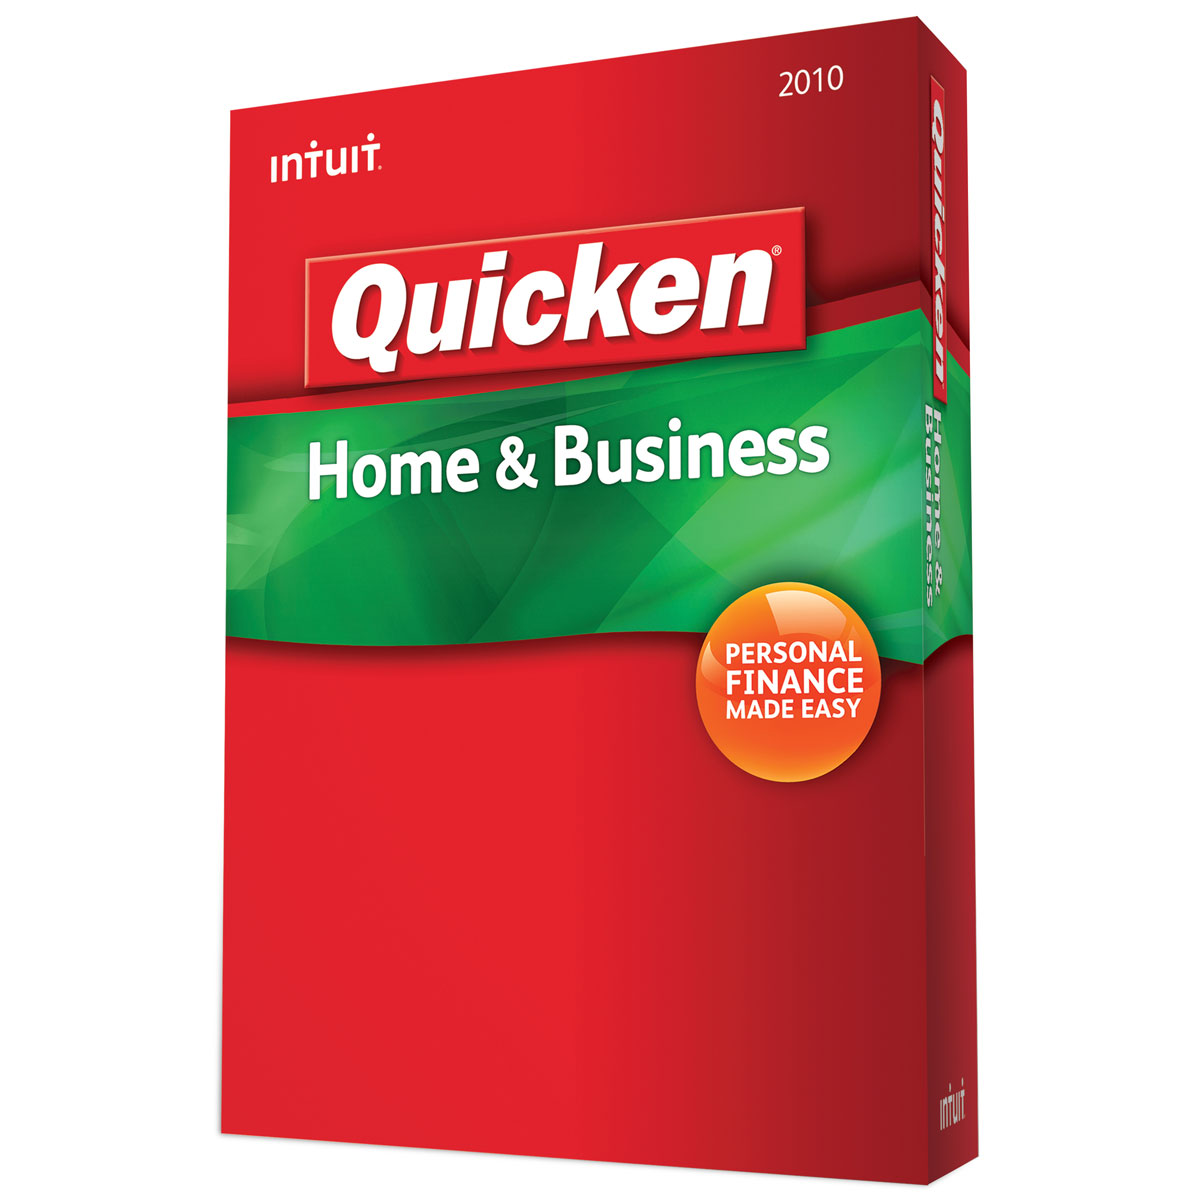 Buxfer, Mint & Quicken